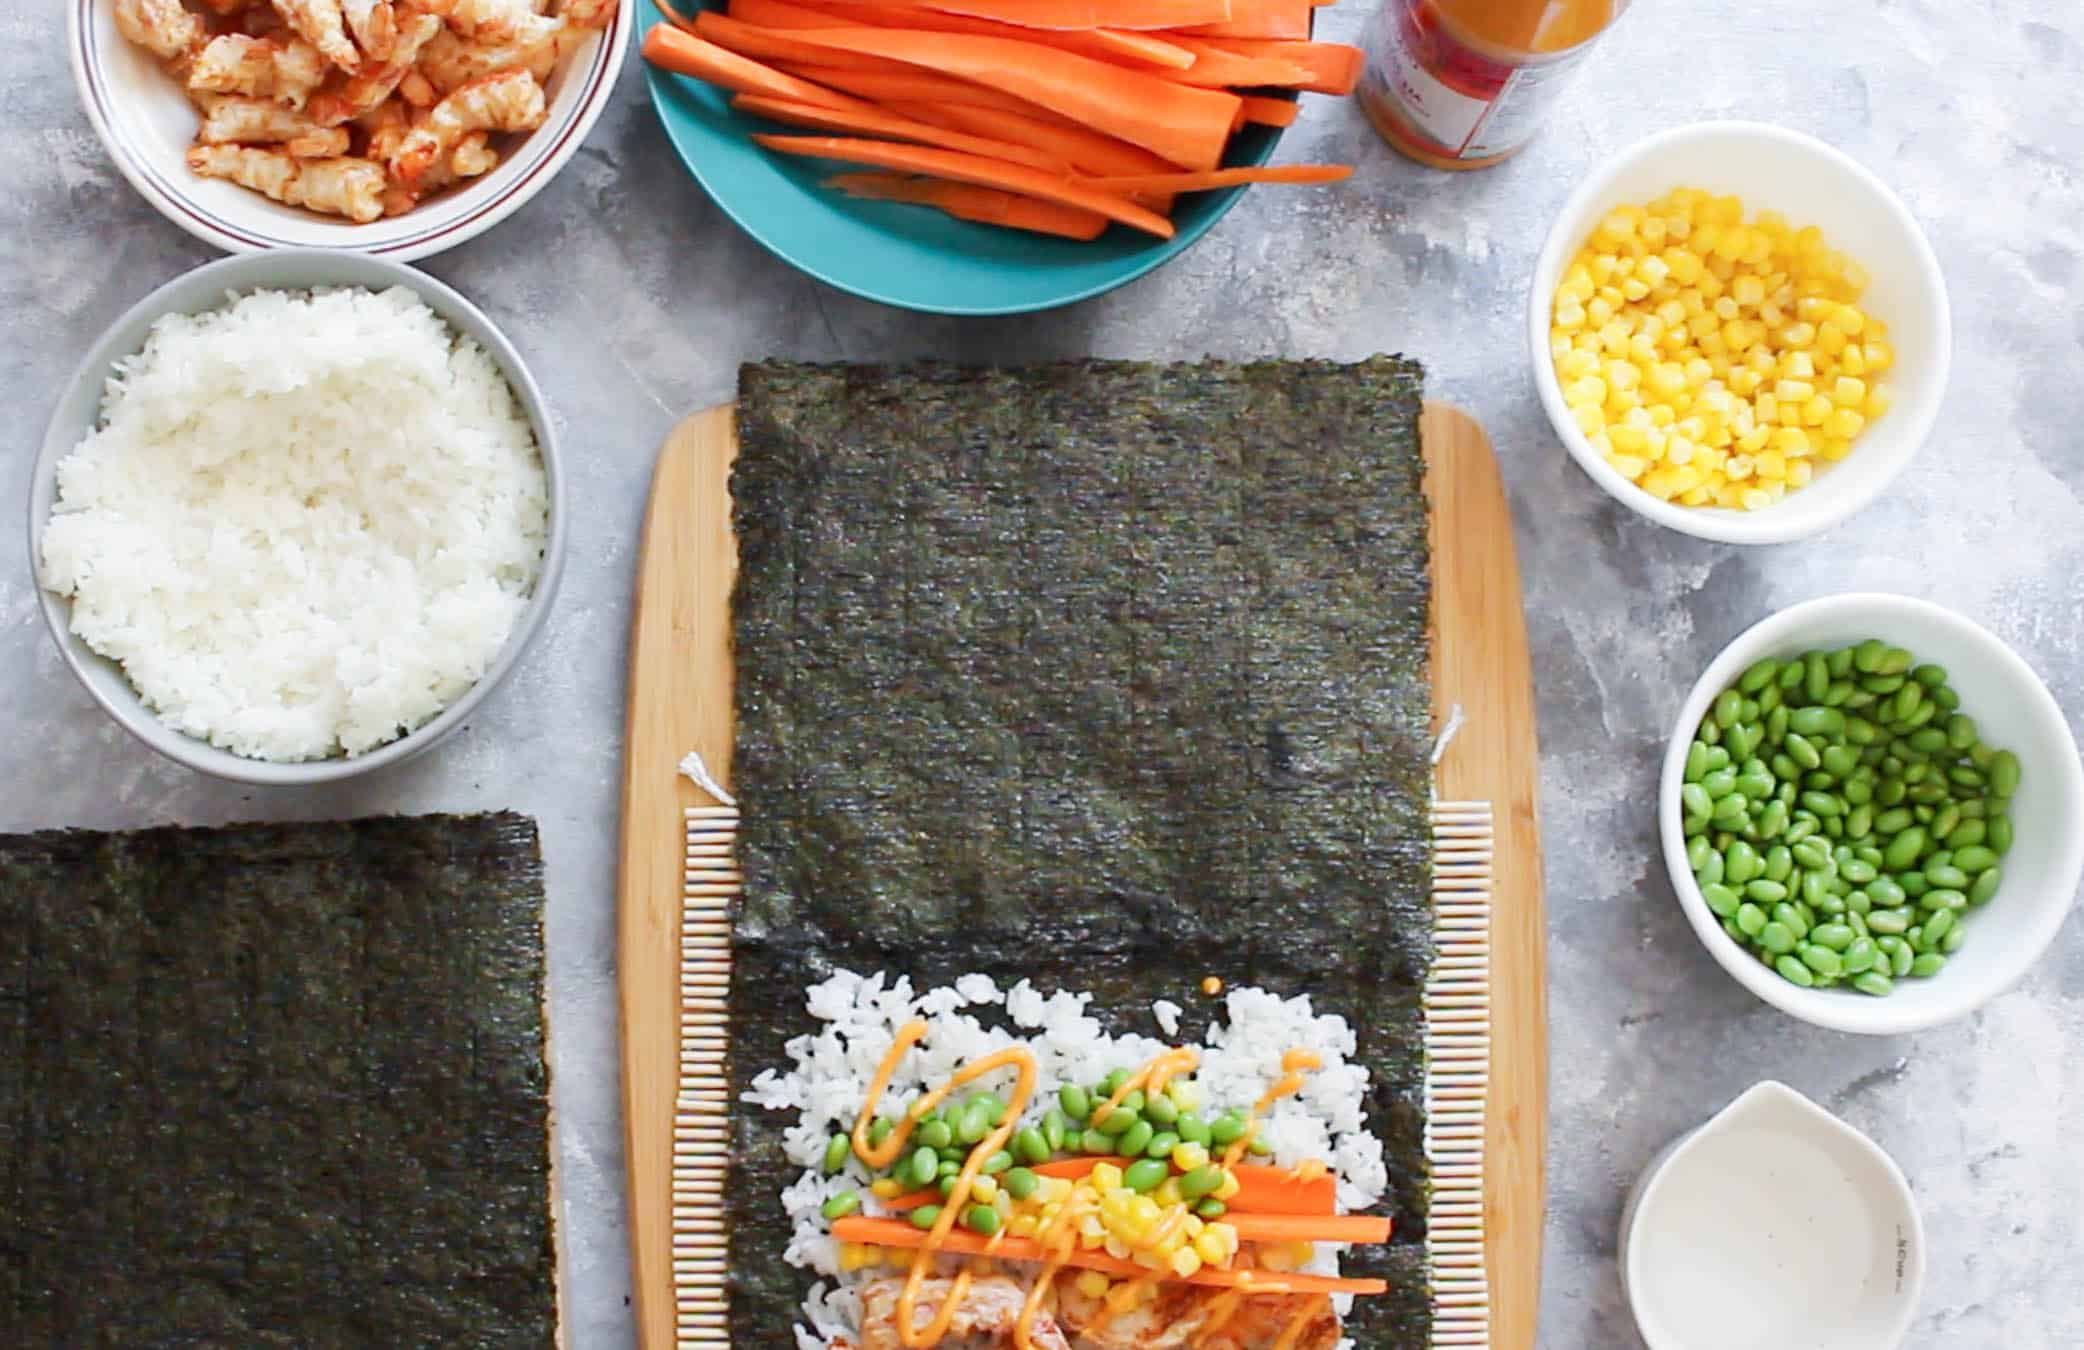 This AirFryer Shrimp Tempura Sushi Burrito is the perfect lunch meal prep! Easy to grab and go, heat not required, and healthy, this sushi burrito will be your go-to lunch!